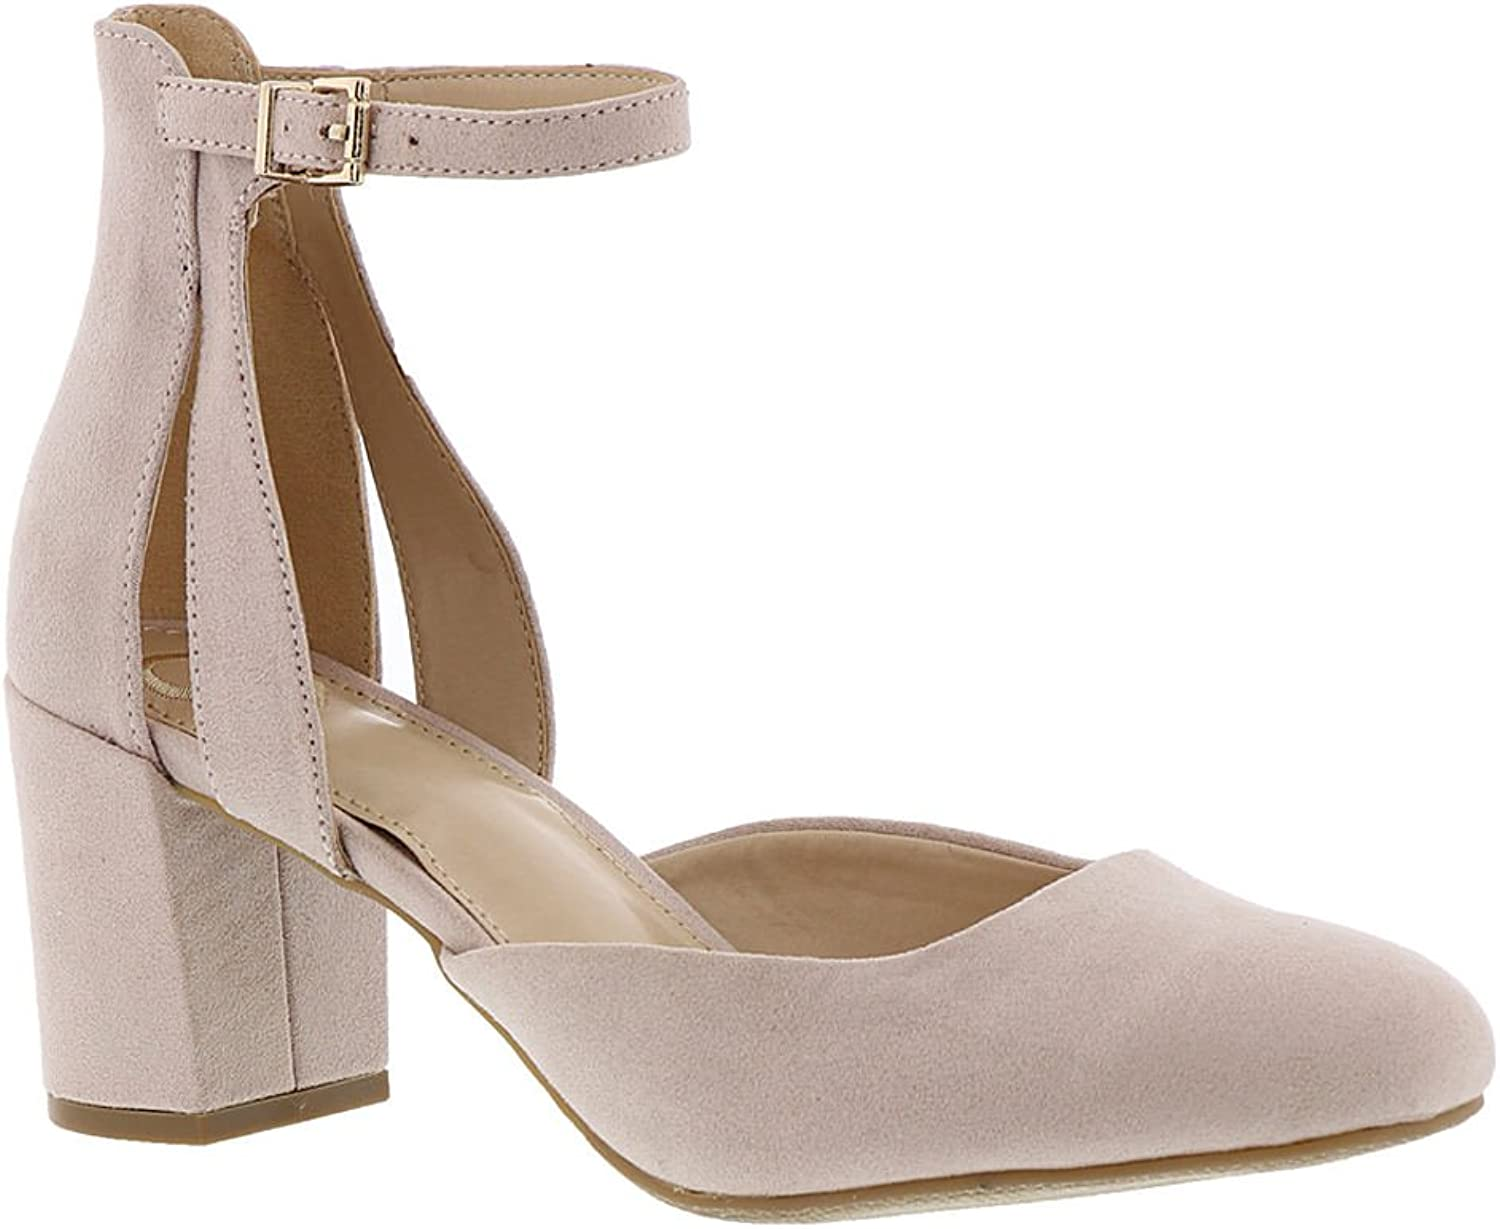 Madeline Womens Flirt Suede Closed Toe Casual Ankle Strap Sandals